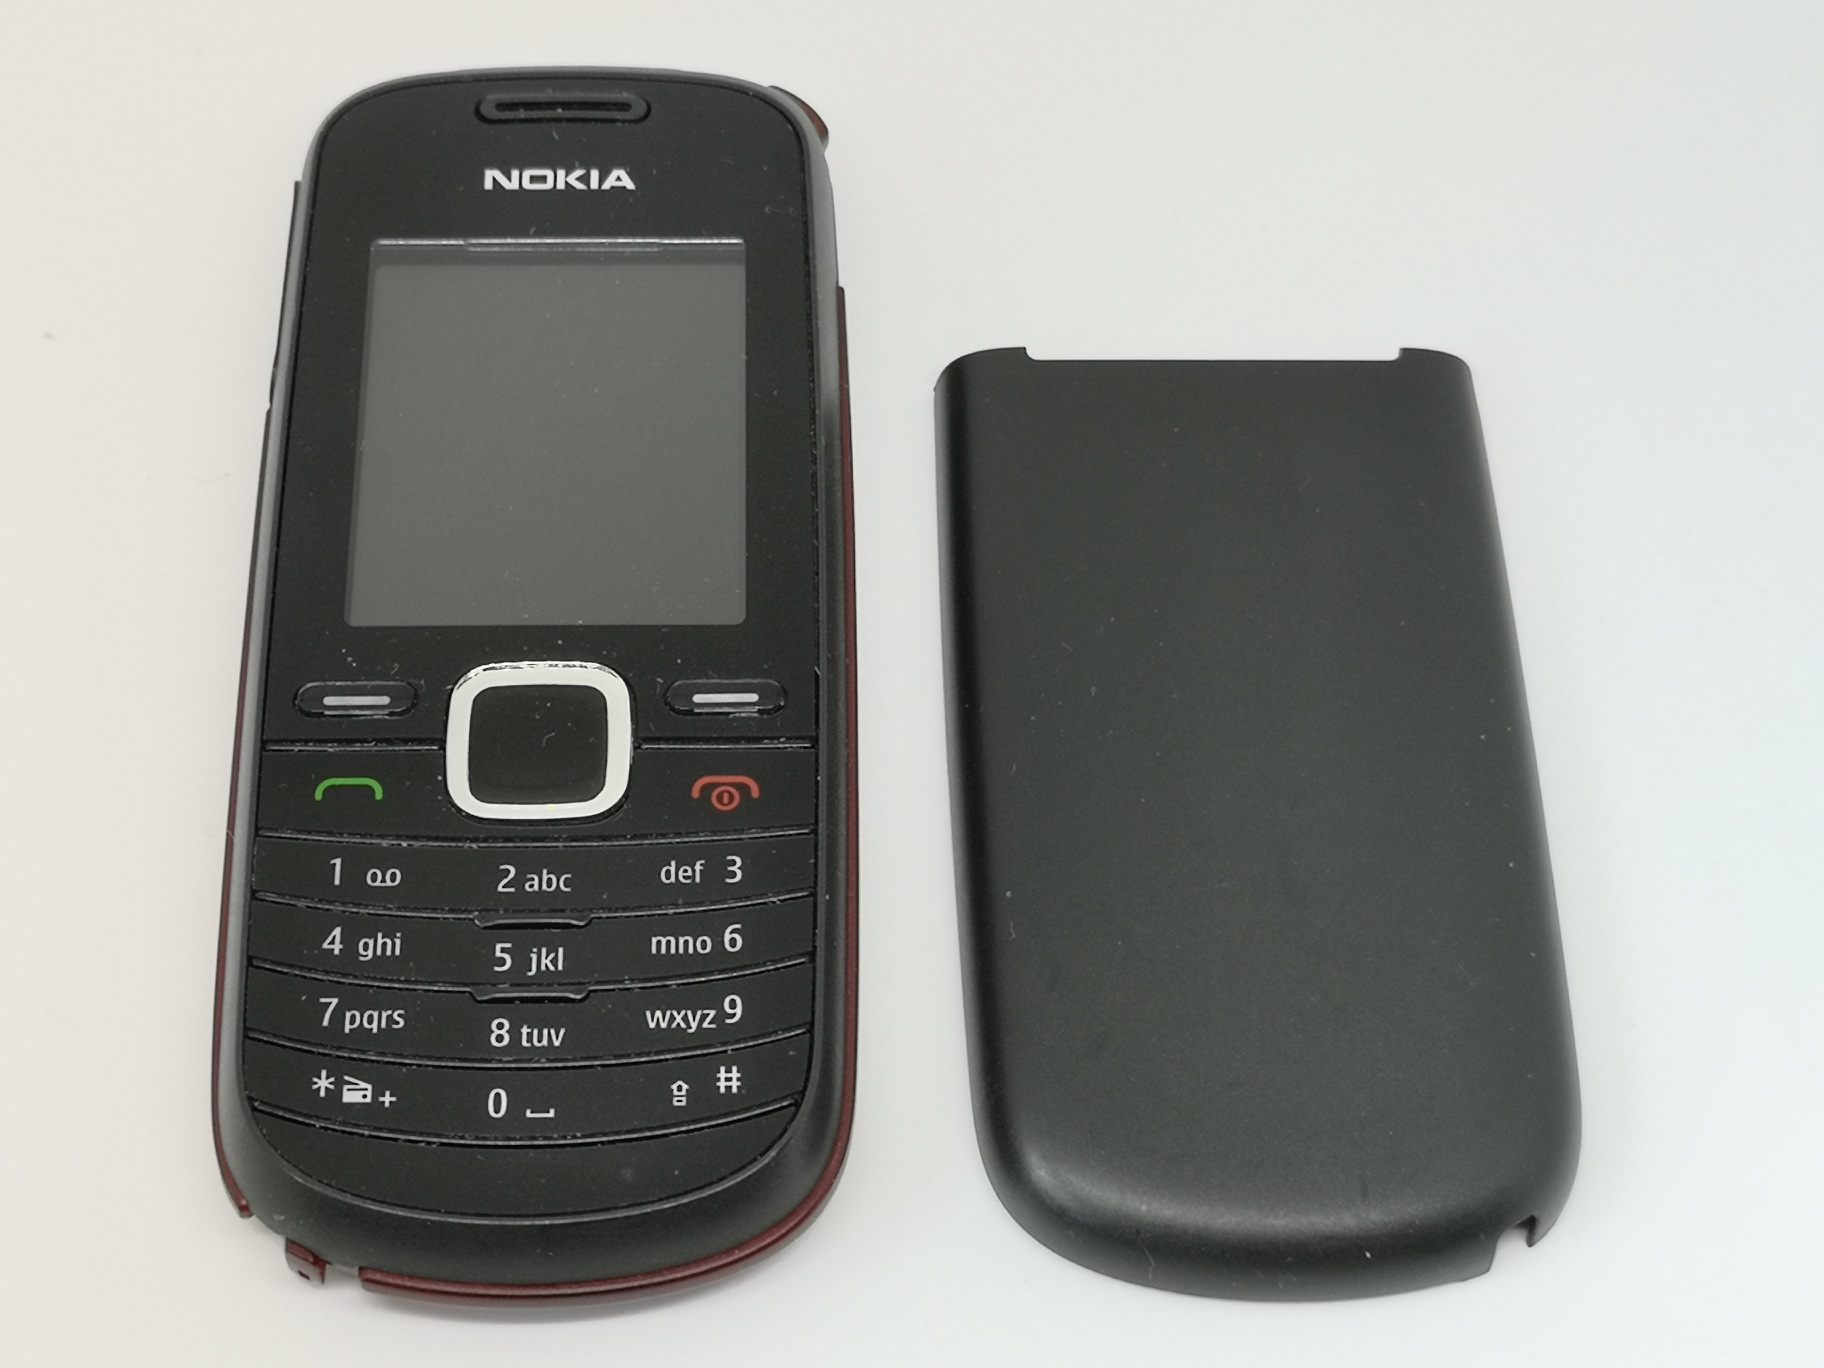 Nokia 1661 Review - Colour-Based Budget Mobile Phone